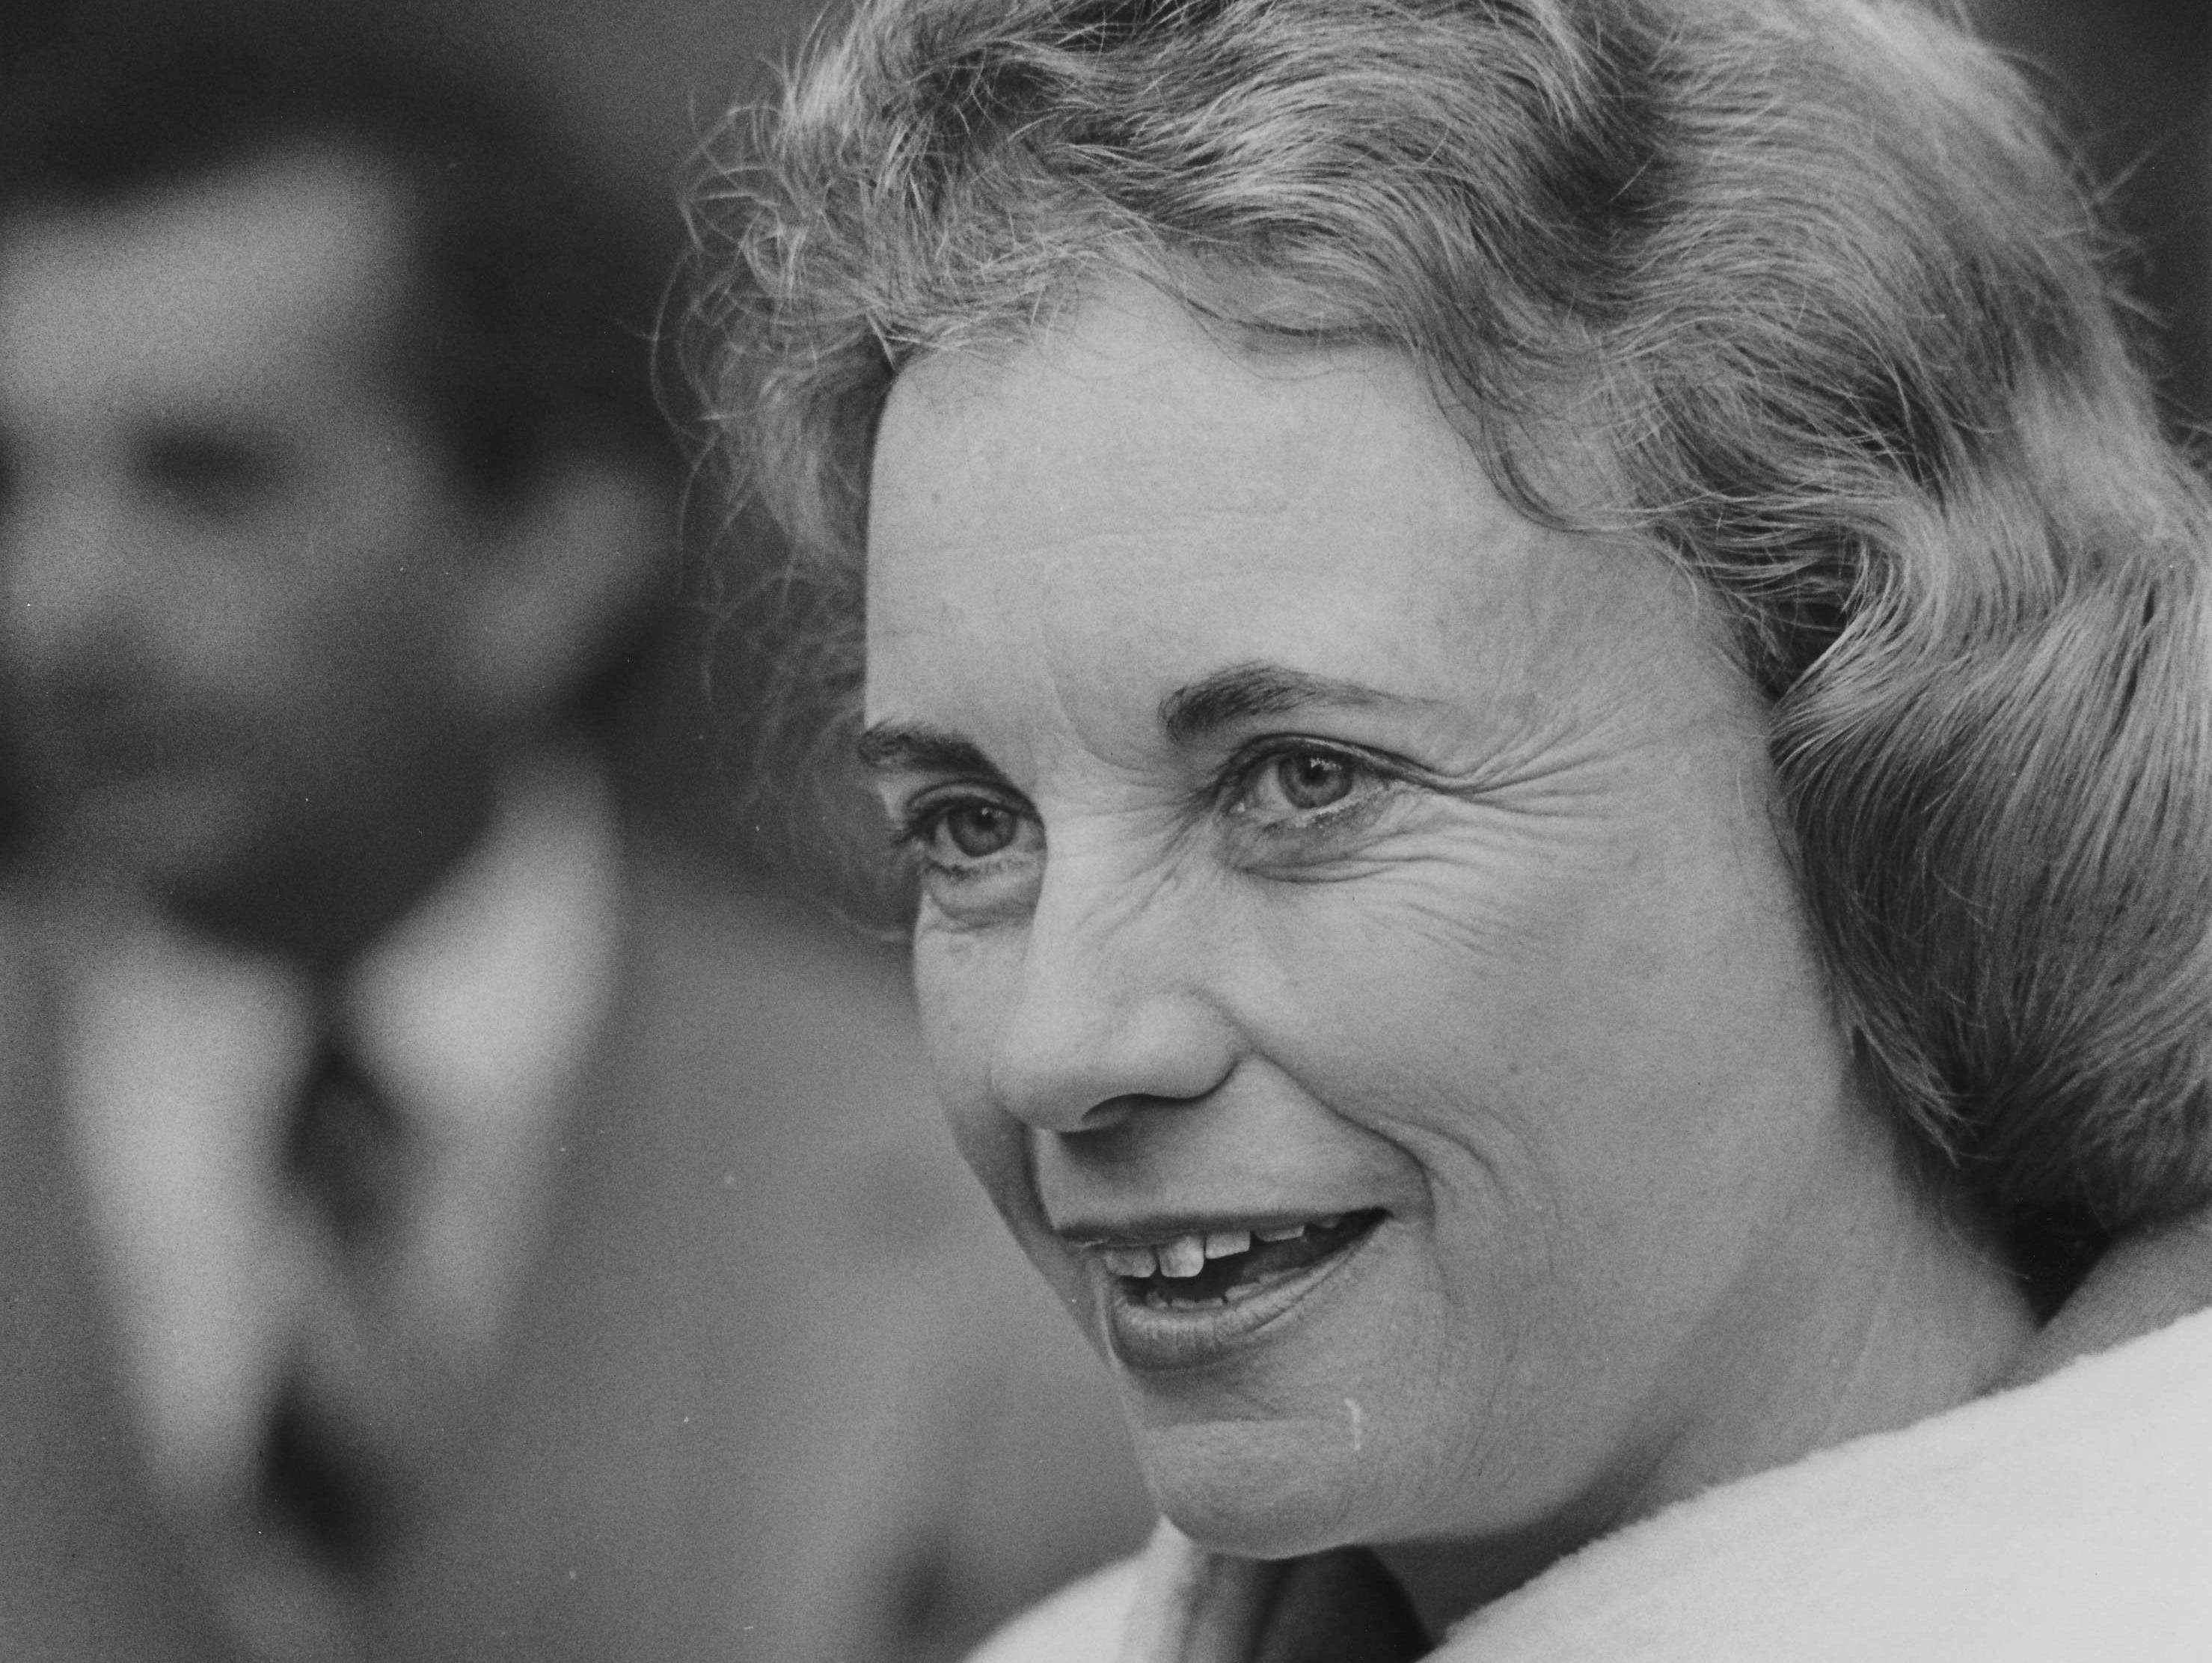 File photo of Sandra Day O'Connor from Nov. 25, 1981.